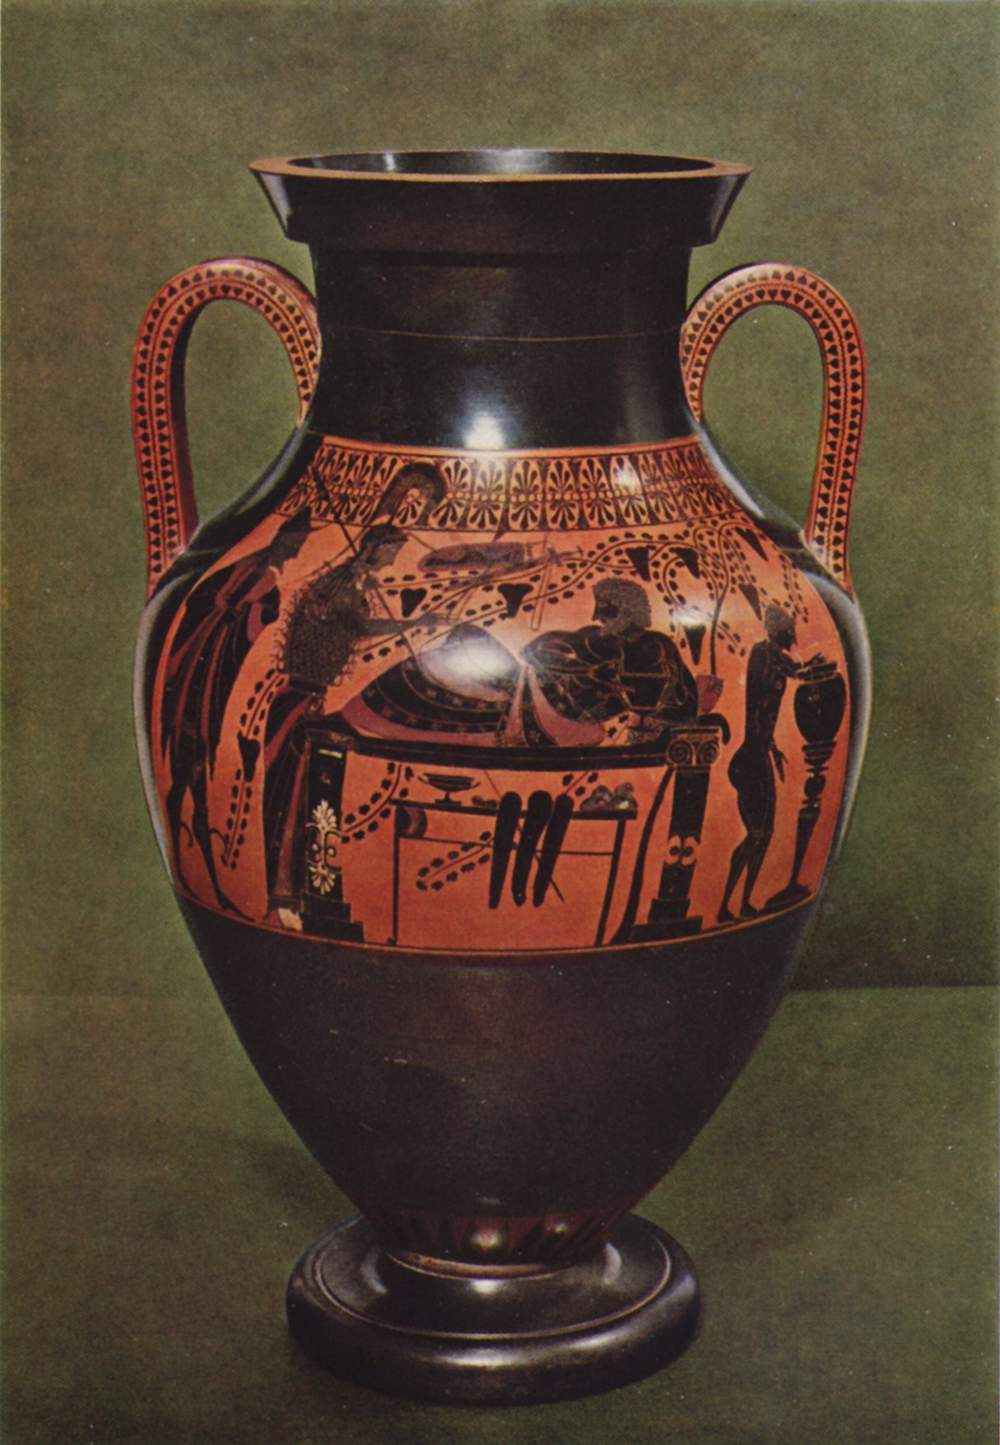 Bilingual vase painting wikipedia floridaeventfo Image collections